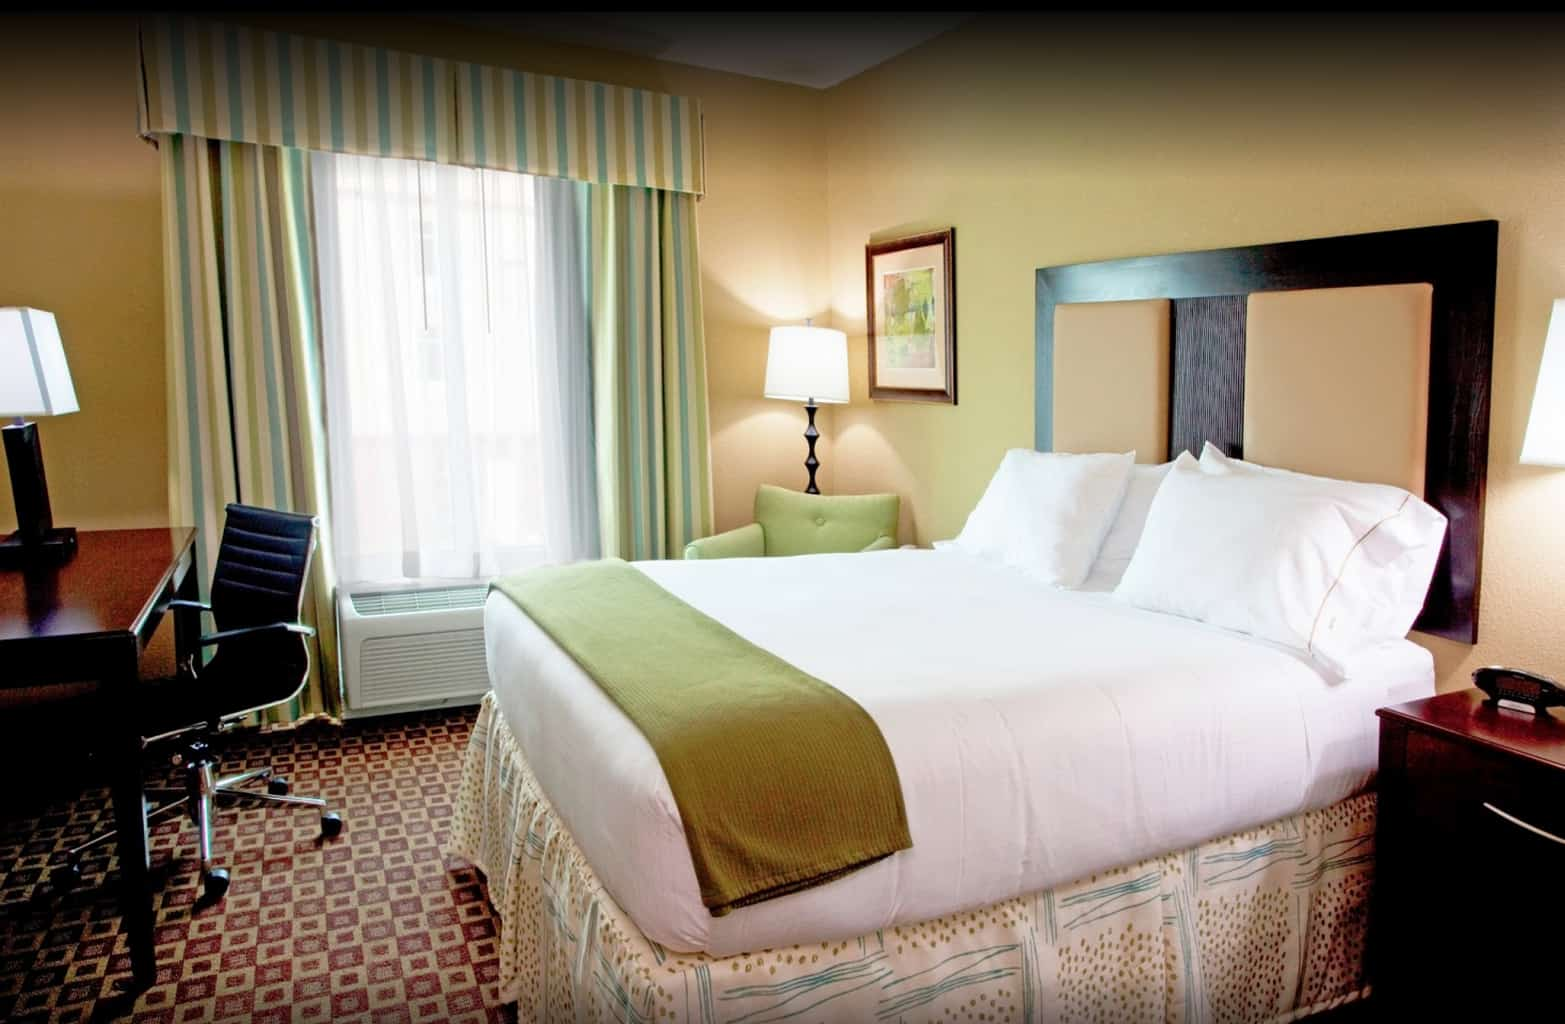 Staying at the Holiday Inn Chaffee-Jacksonville is cheaper when you buy IHG points. Travelingwellforless.com